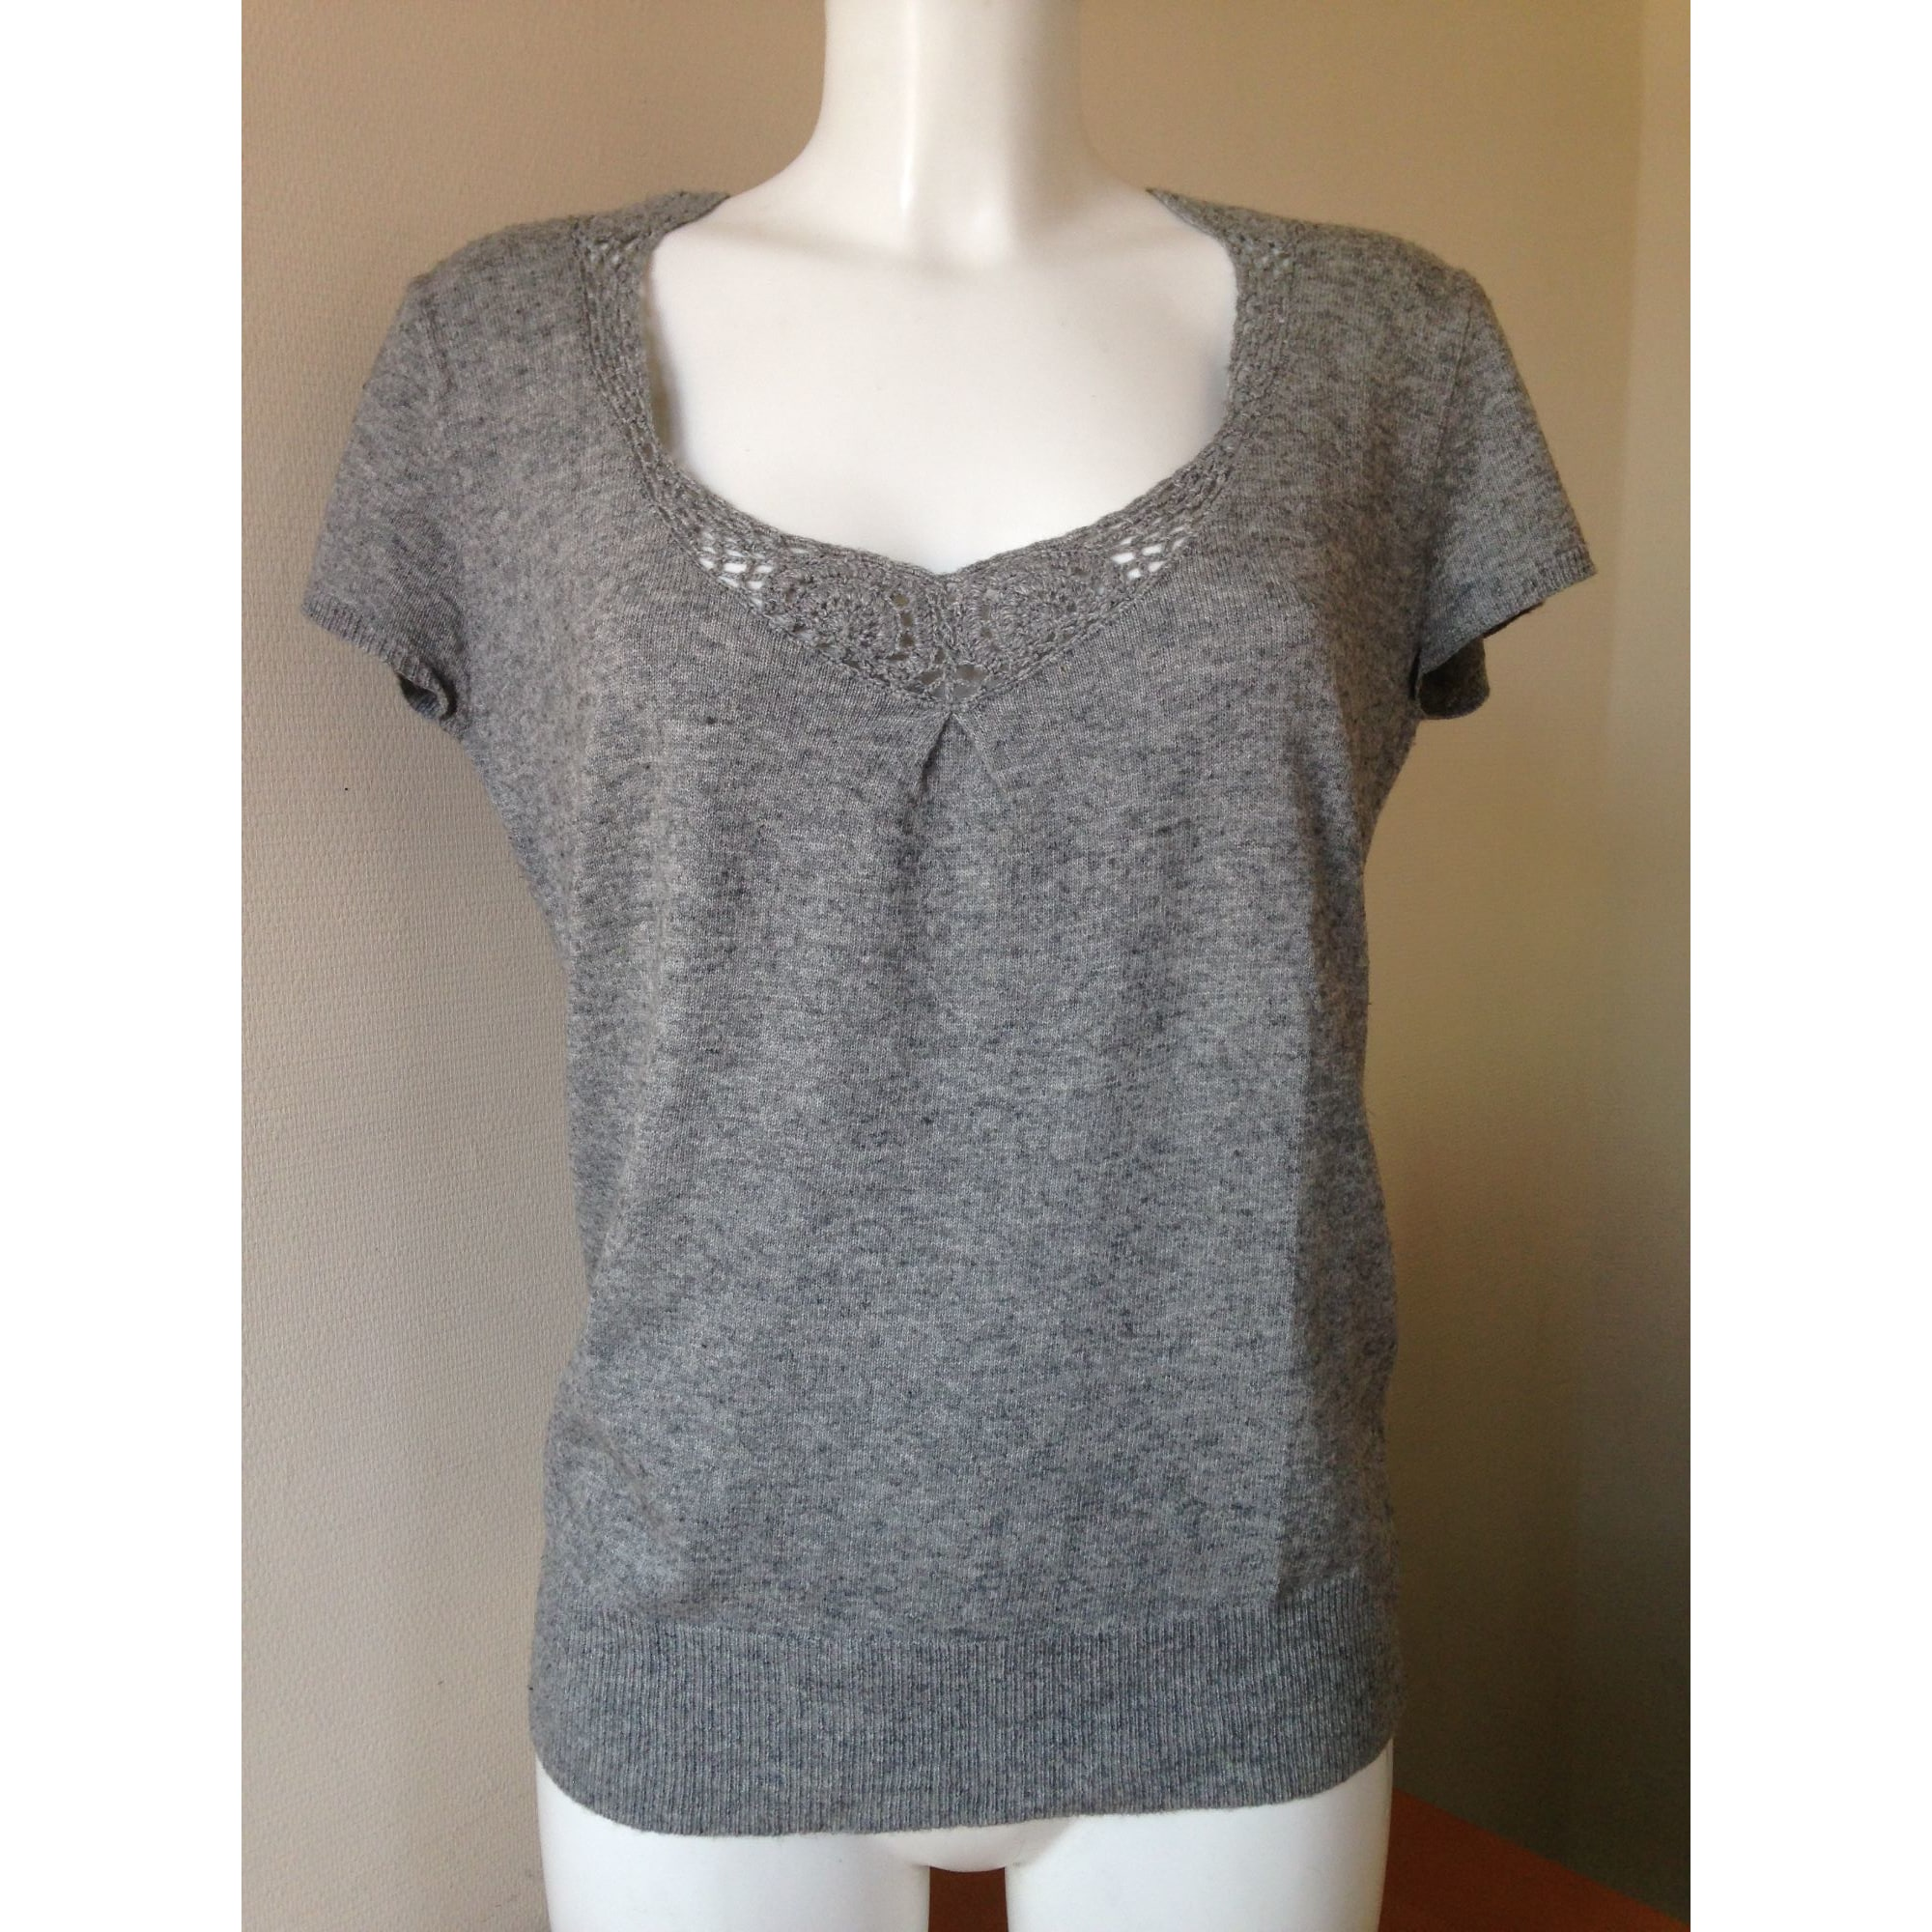 Pull SUD EXPRESS Gris, anthracite